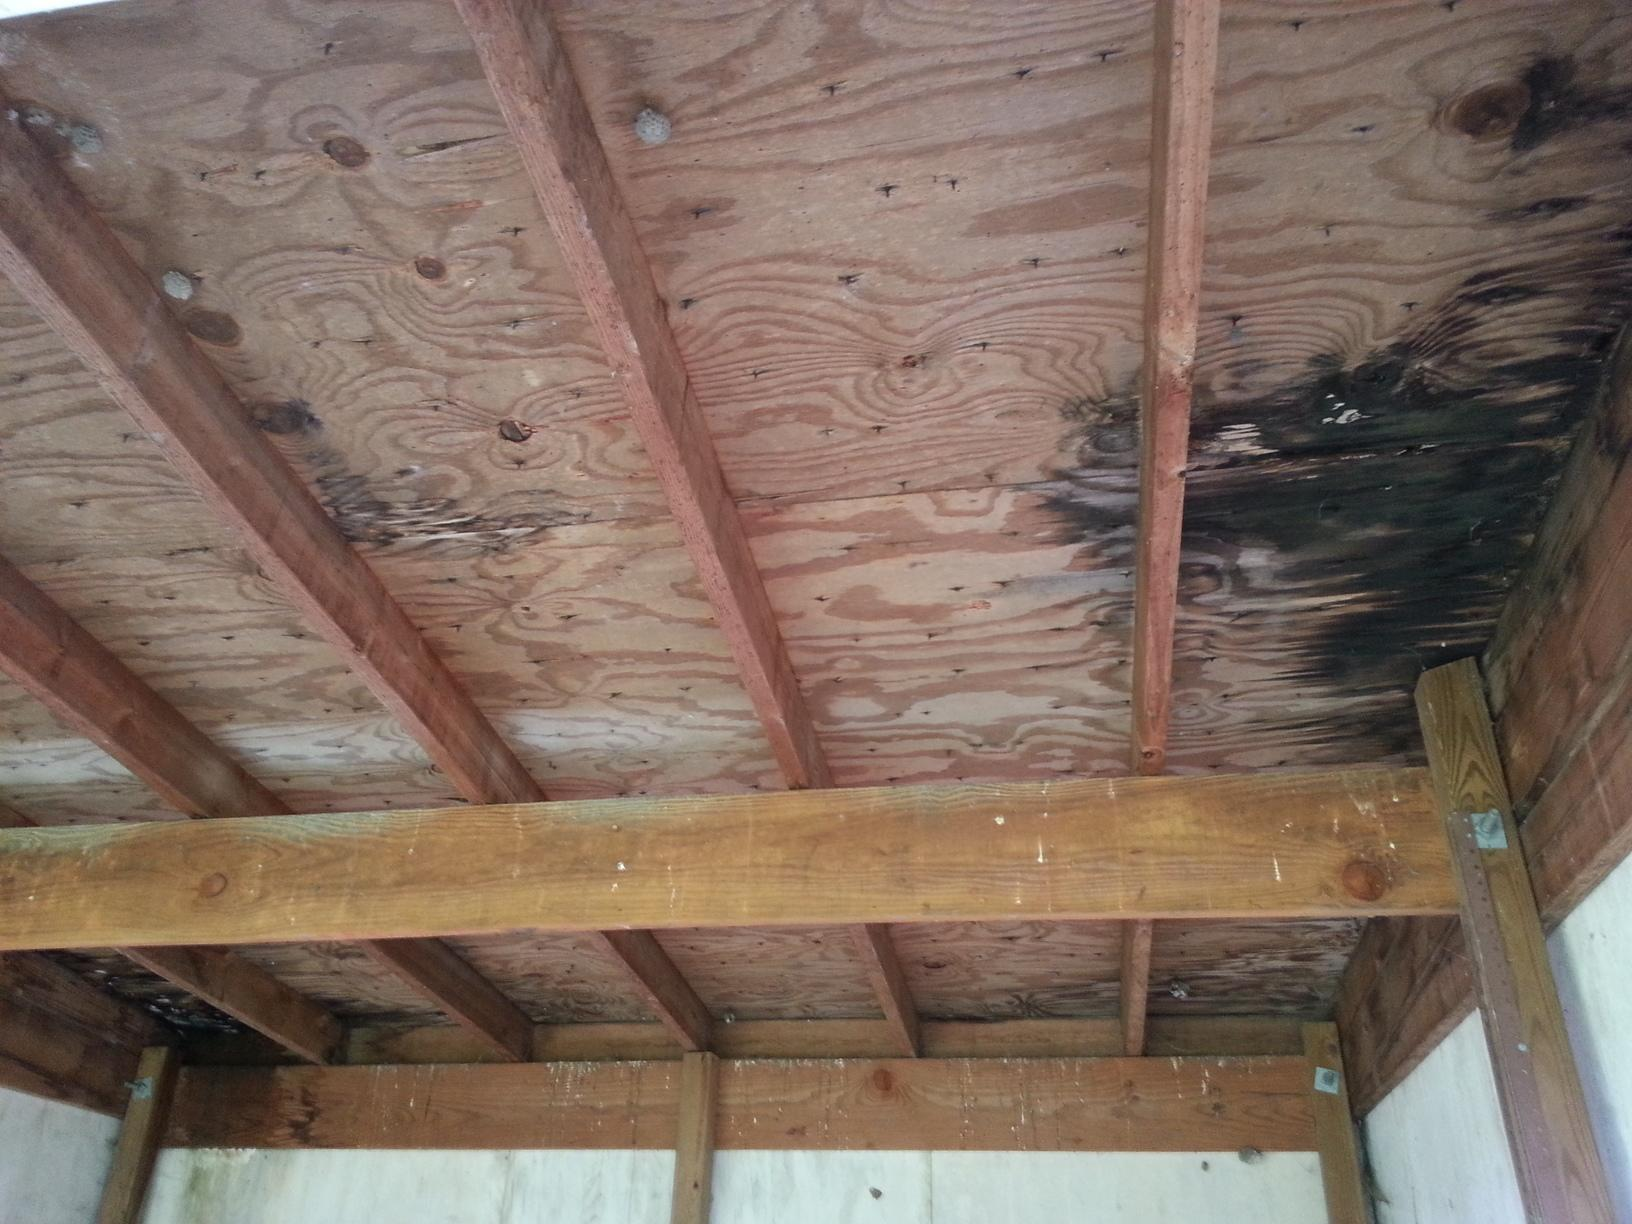 Water Damage from Asphalt Shingle Roof